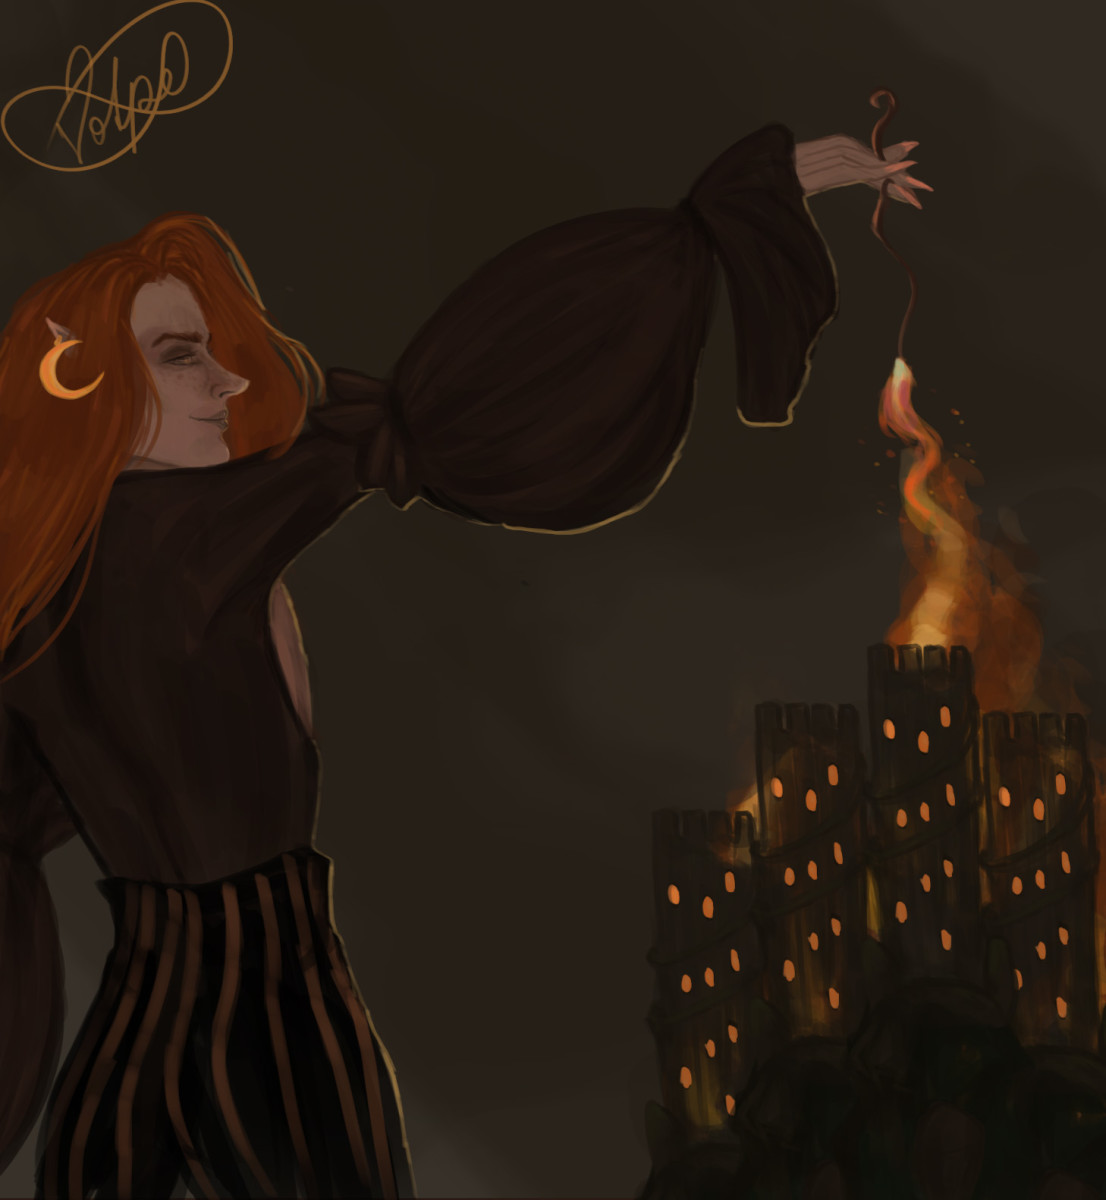 The Fairy Arsonist by Leona Volpe ©2020